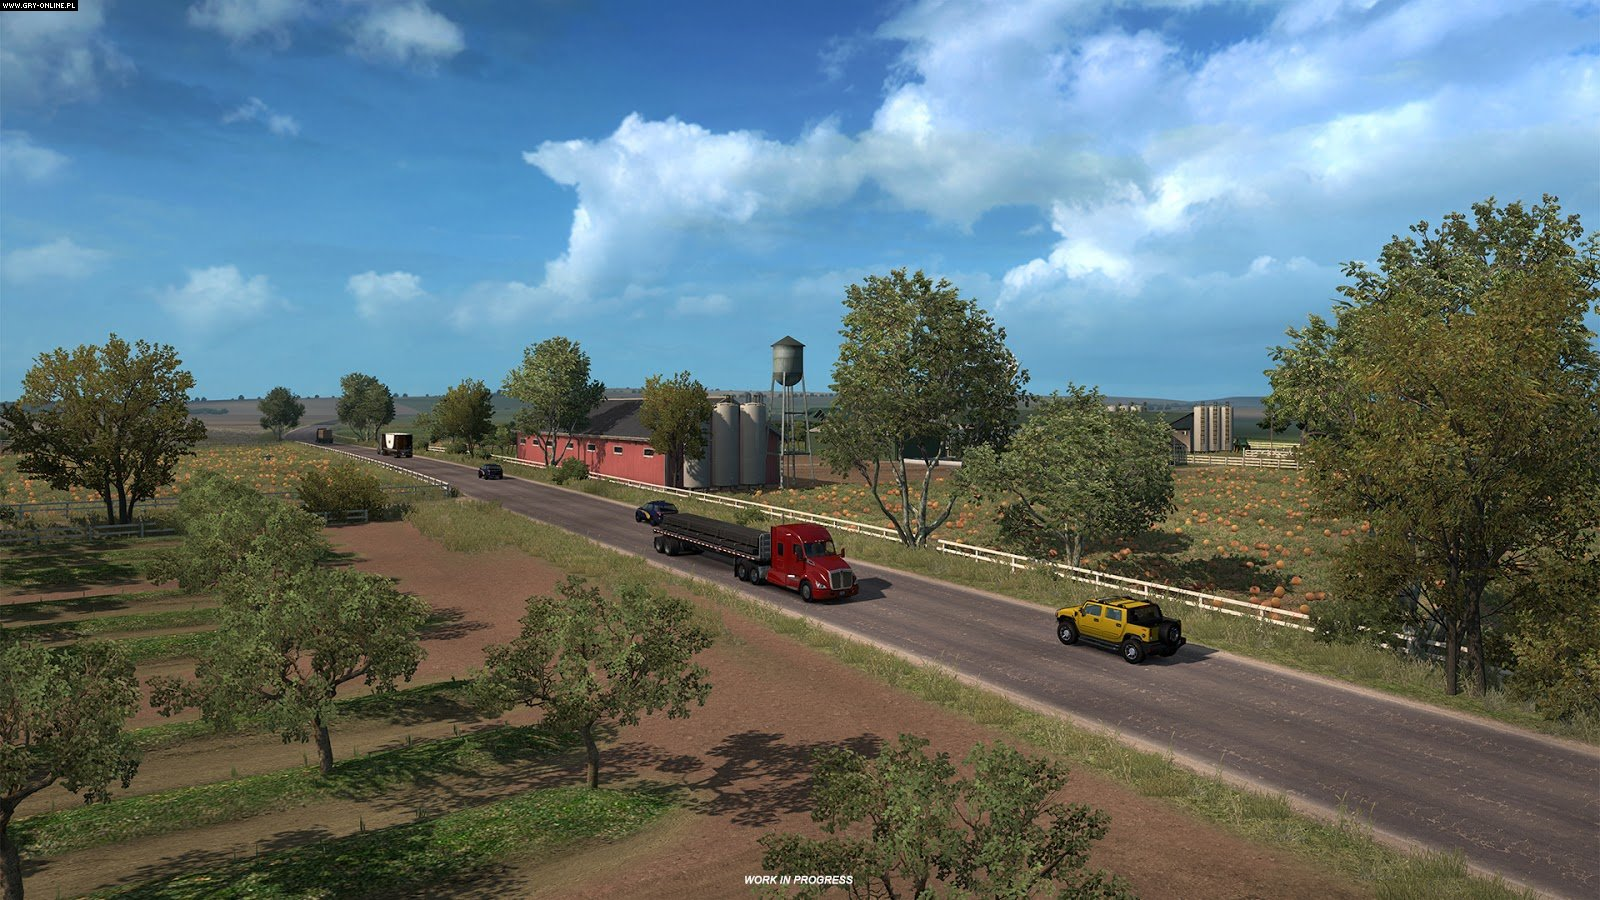 American Truck Simulator: Washington PC Games Image 3/8, SCS Software